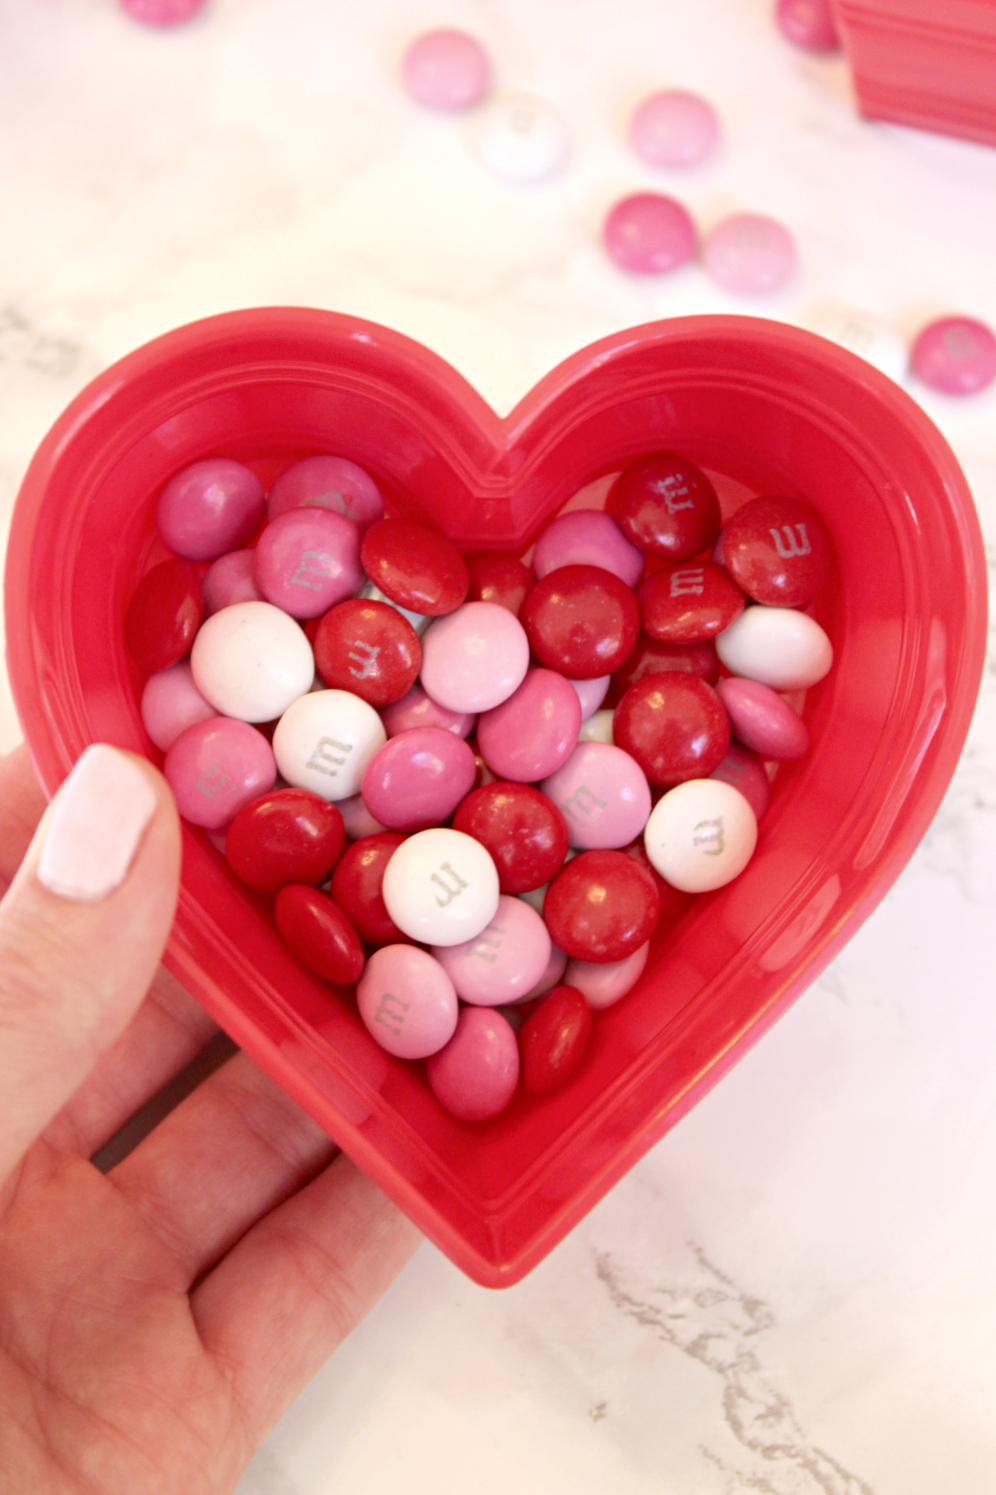 Cute Edible Gifts For Valentines Day Diary Of A Debutante